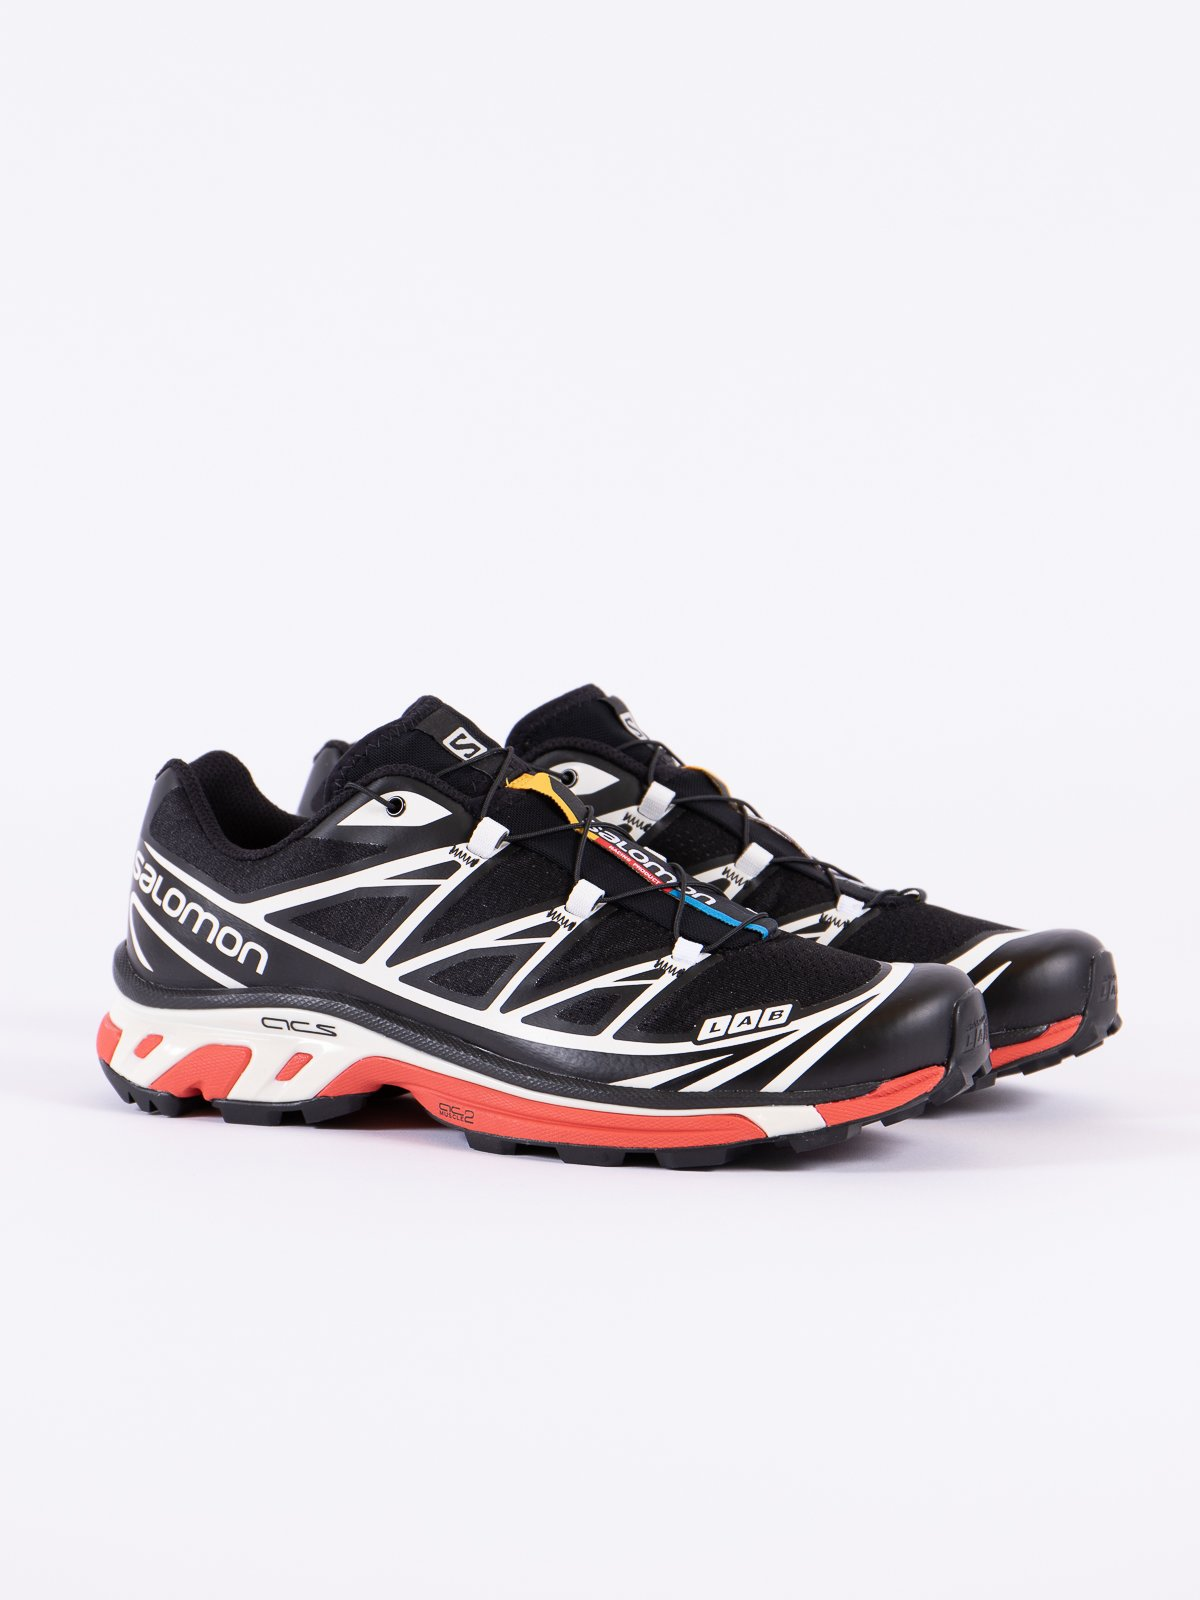 BLACK/VANILLA/RACING RED XT–6 SOFTGROUND LT ADV - Image 1